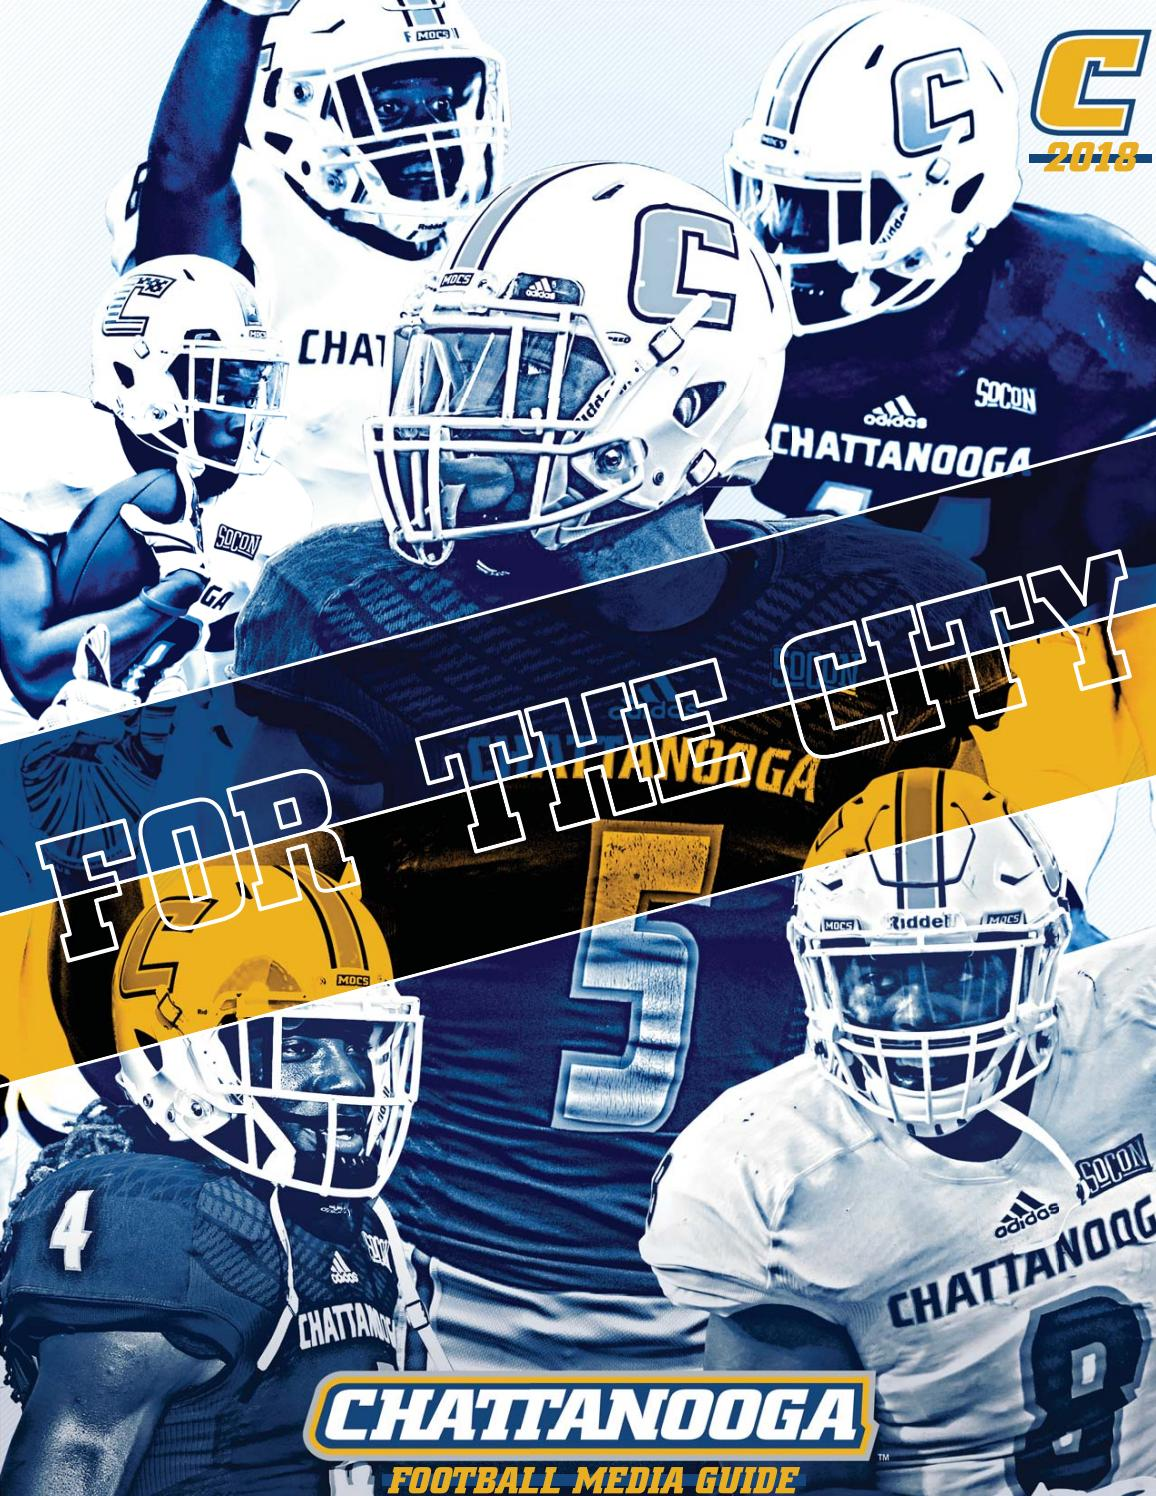 d598897ddf3 2018 Chattanooga Football Media Guide by Chattanooga Athletics - issuu